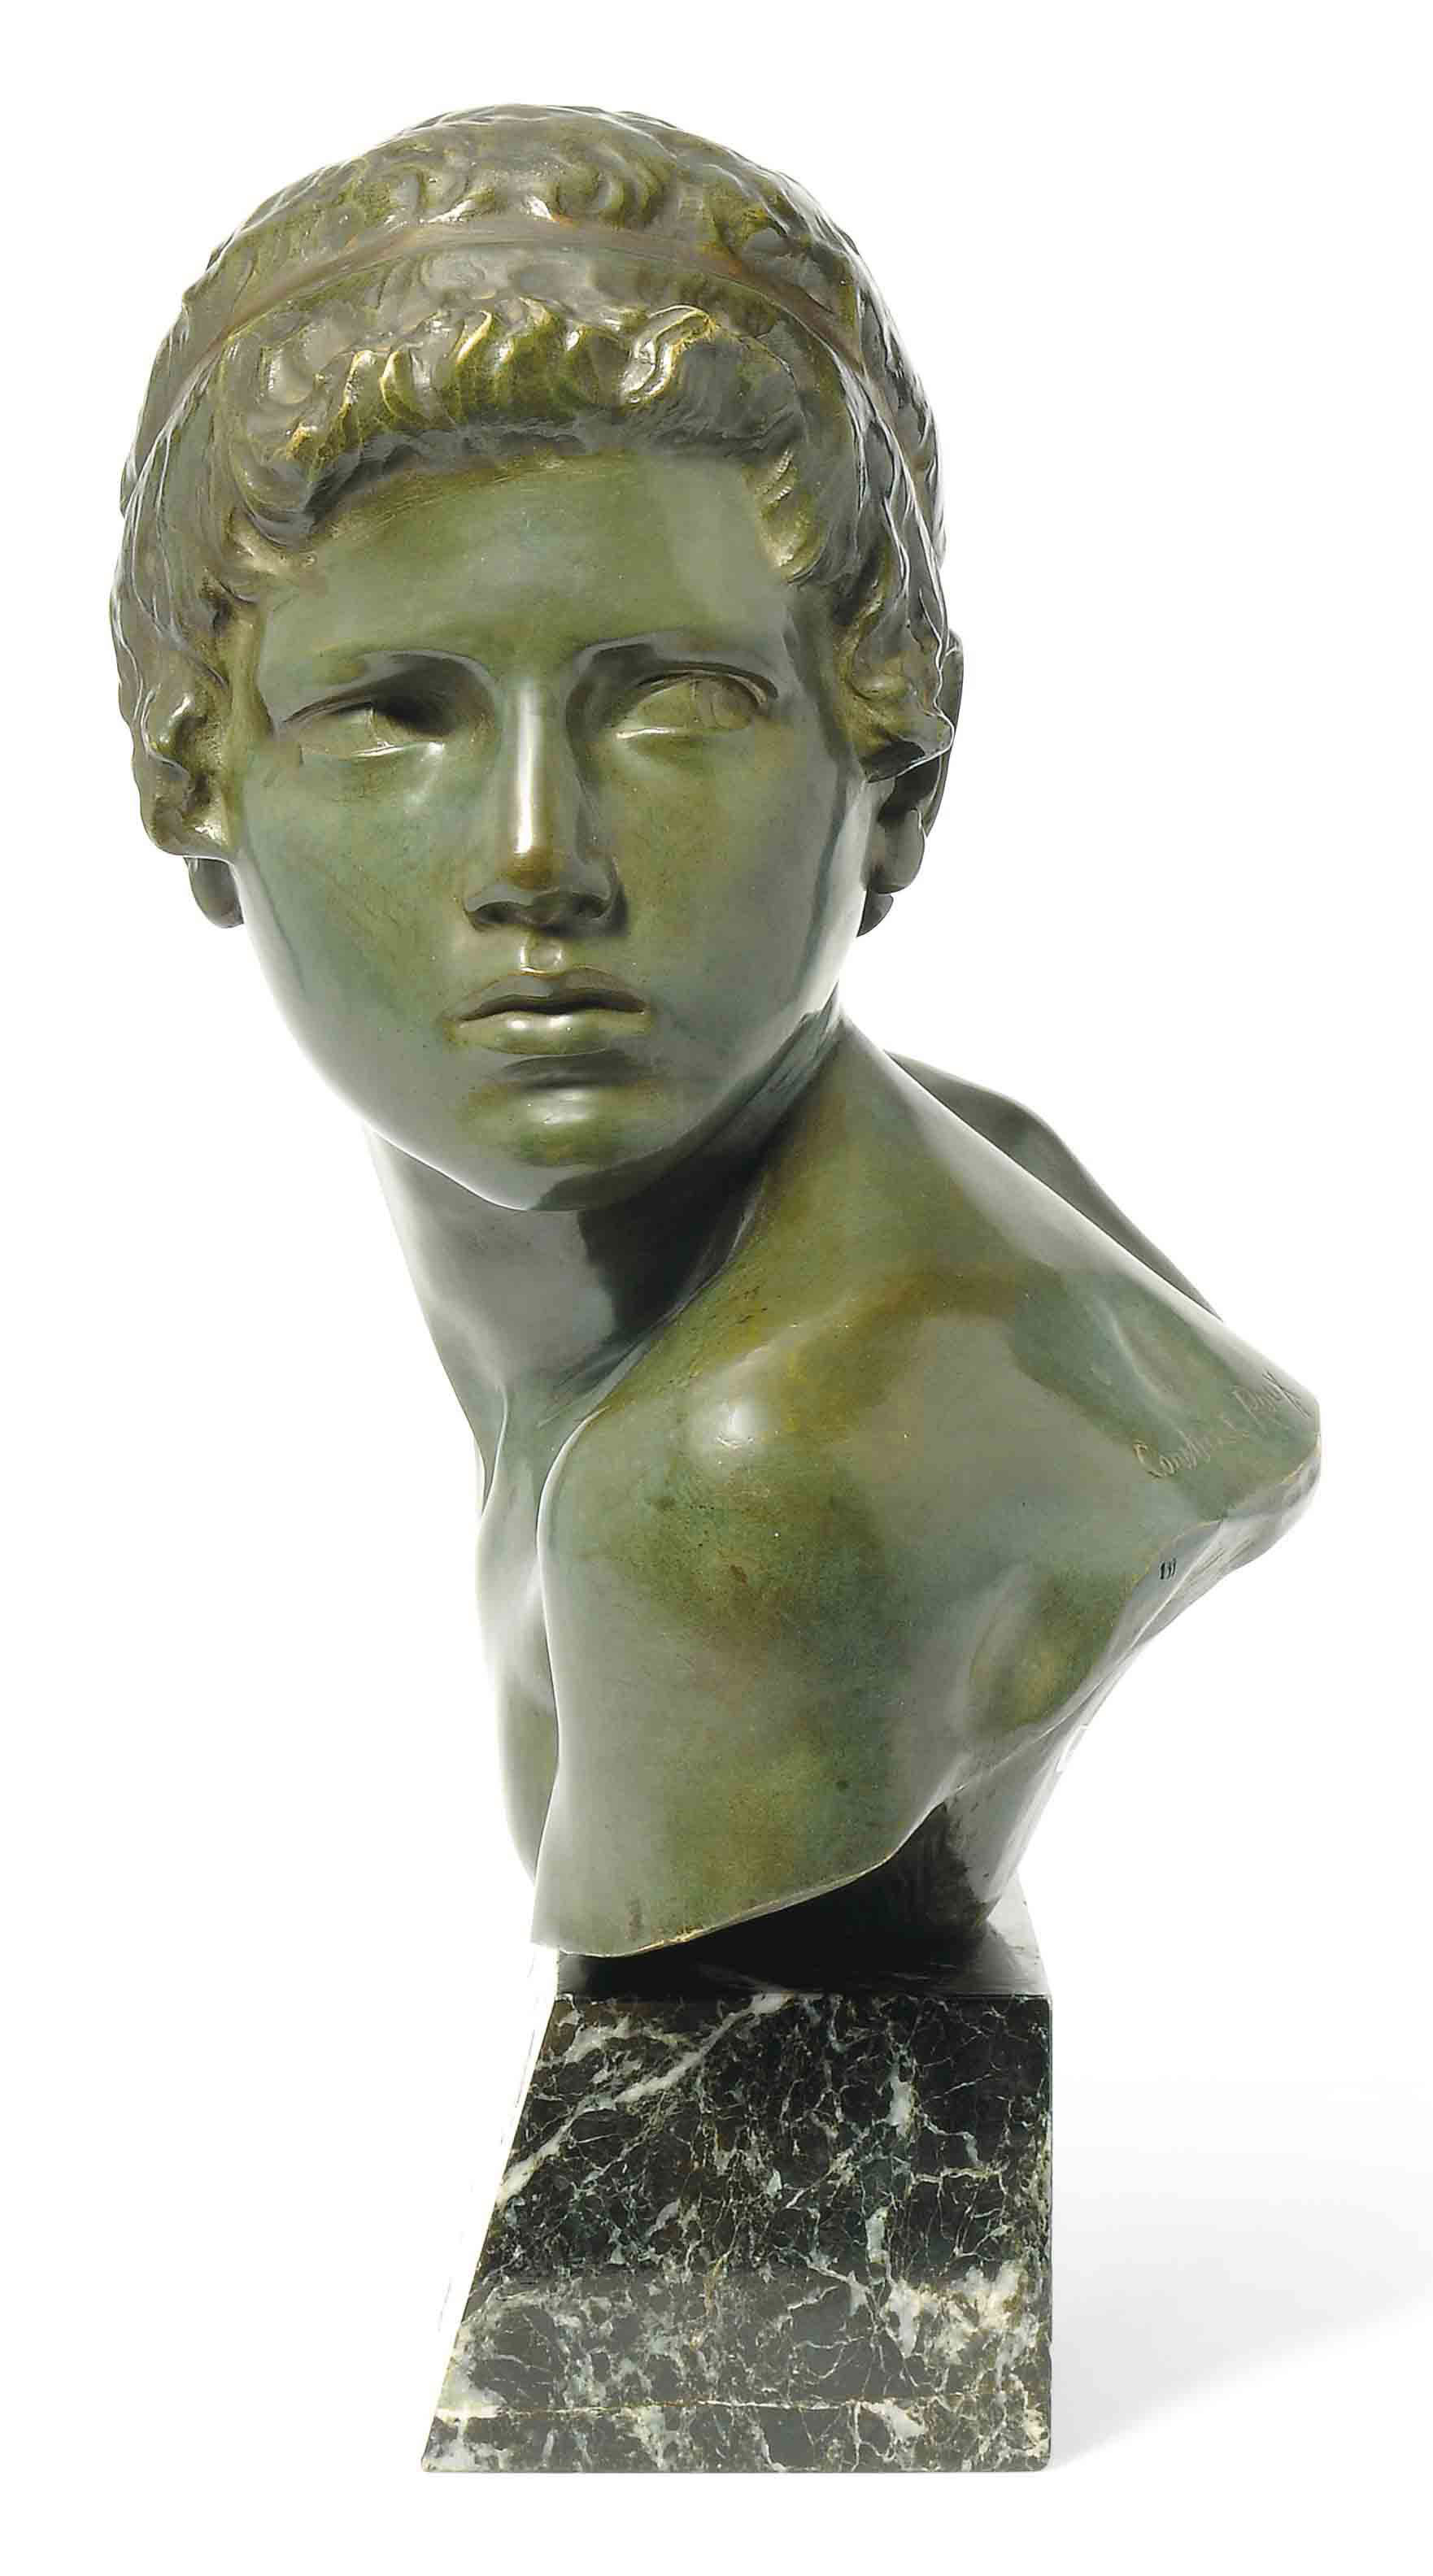 'THE CHILD ACHILLES', A PATINATED BRONZE BUST BY CONSTANT ROUX